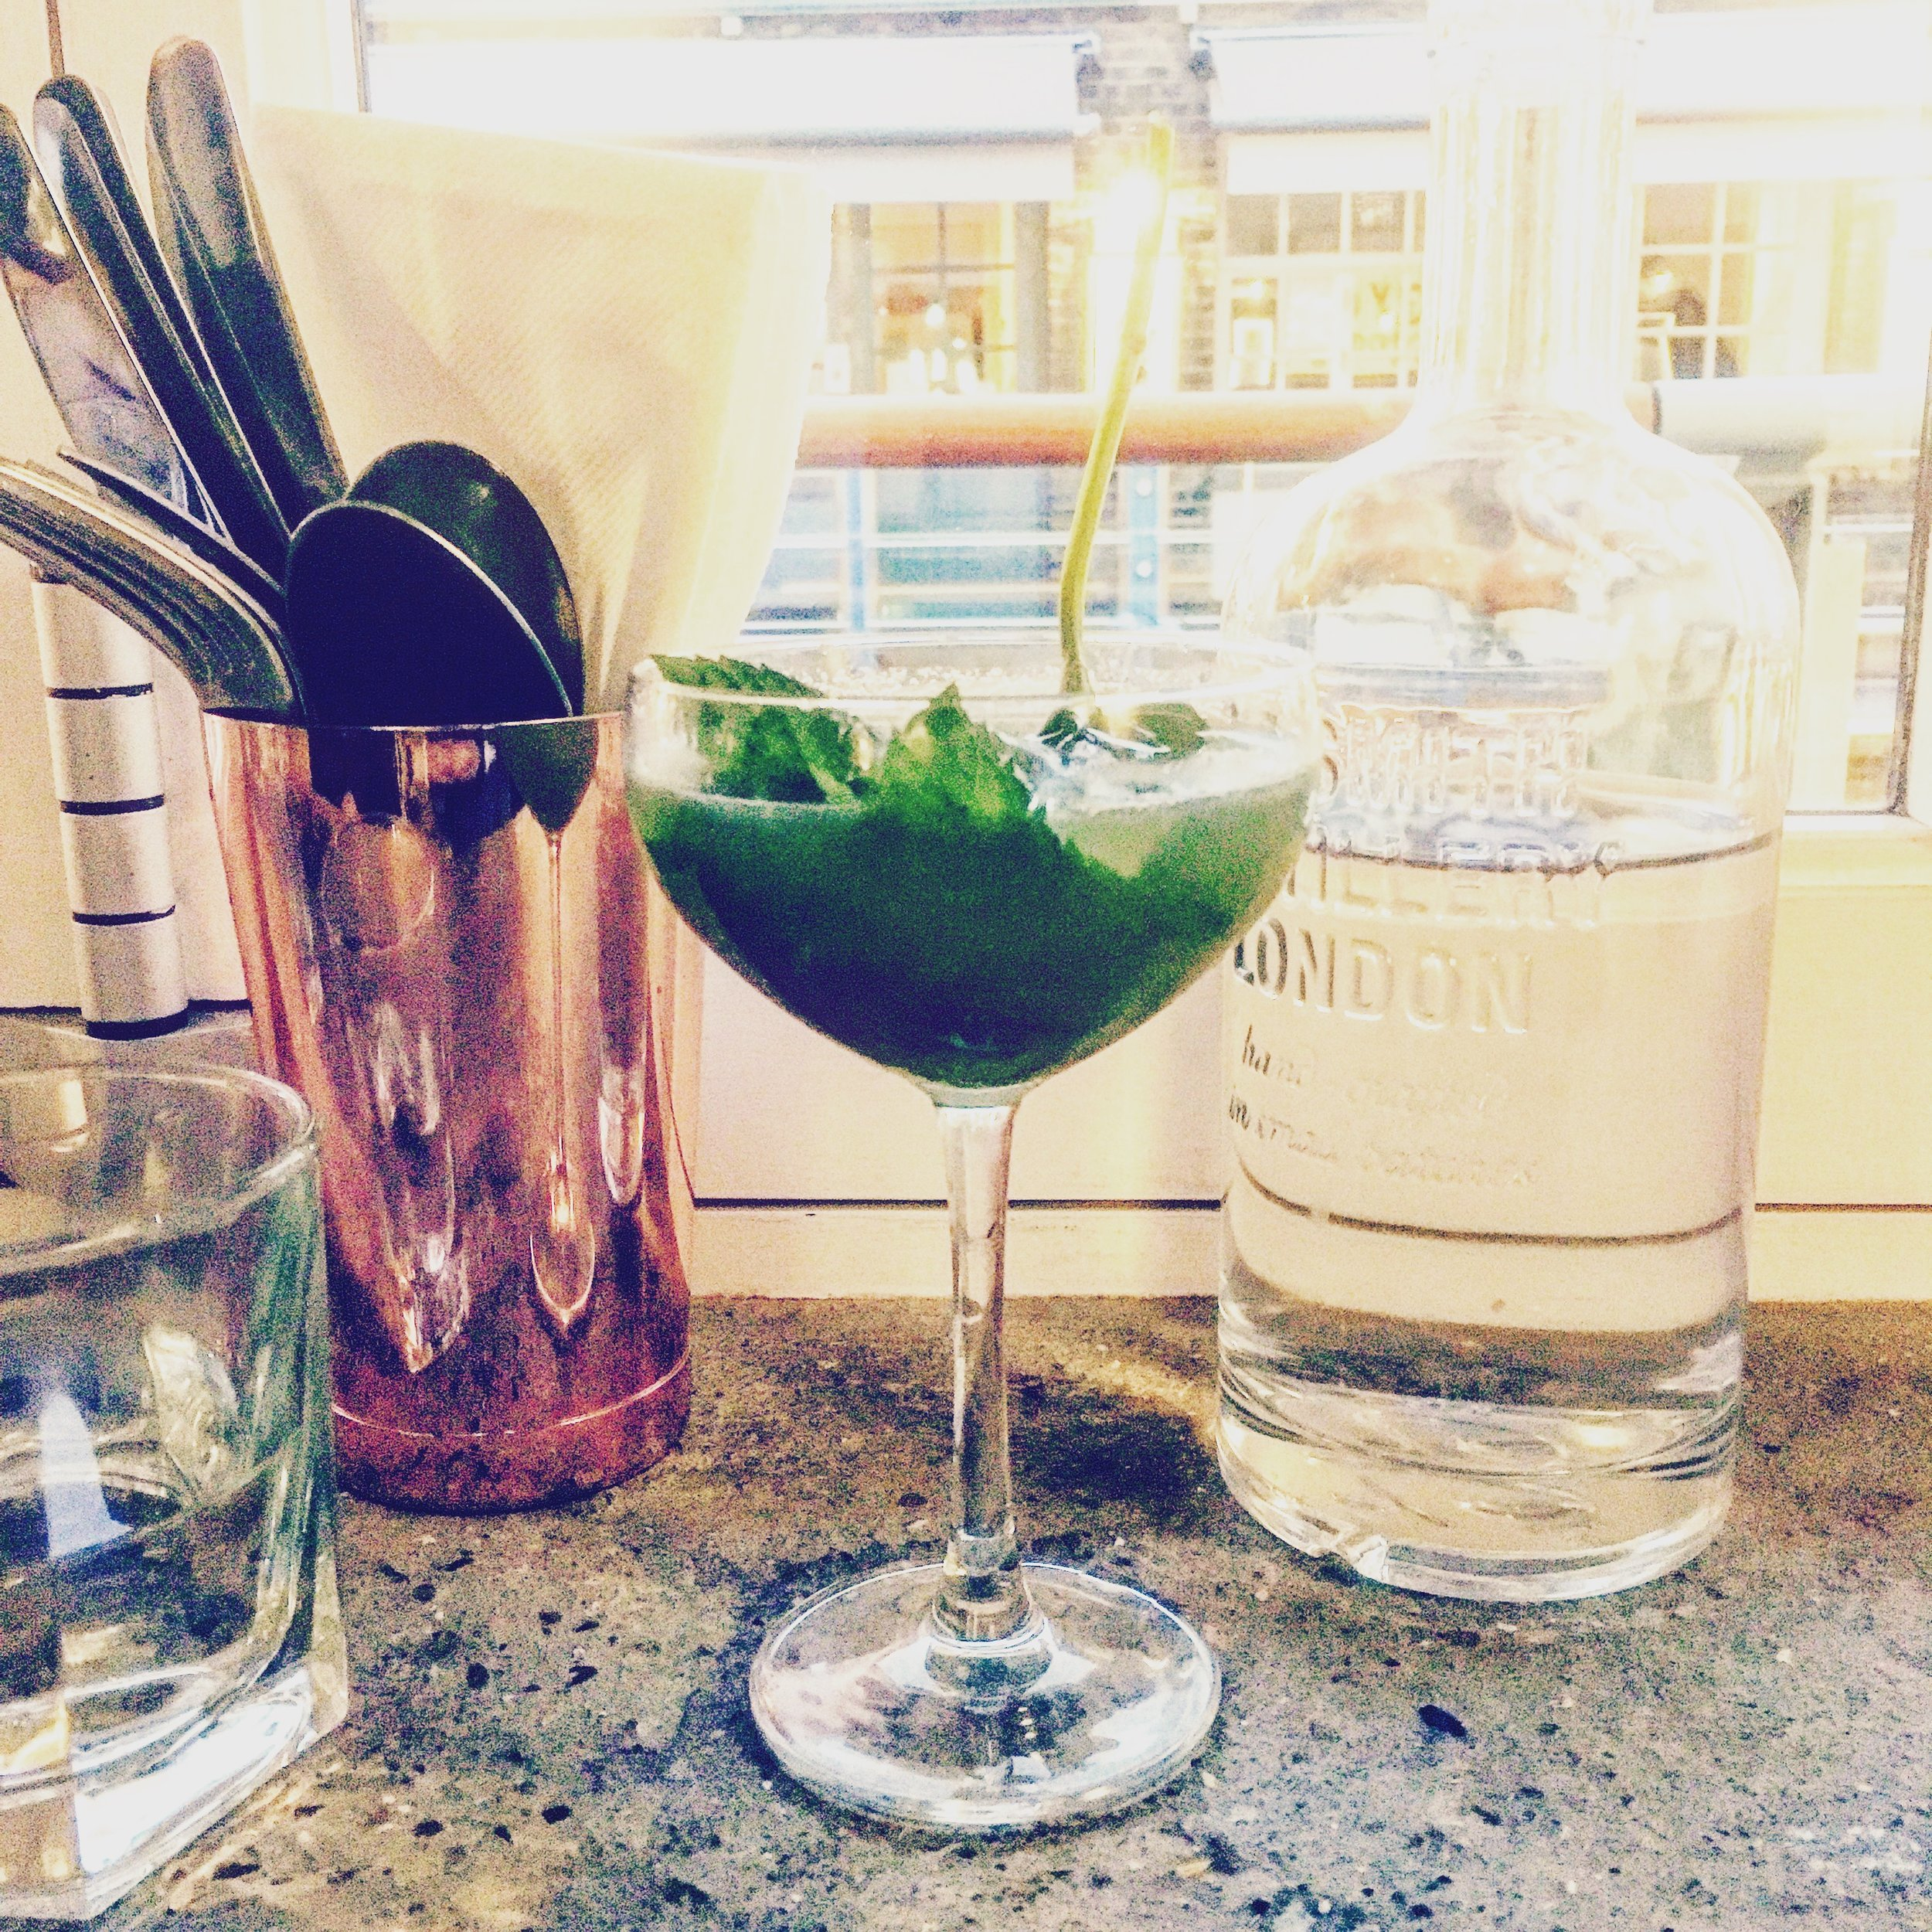 Mediterranian Mermaid cocktail